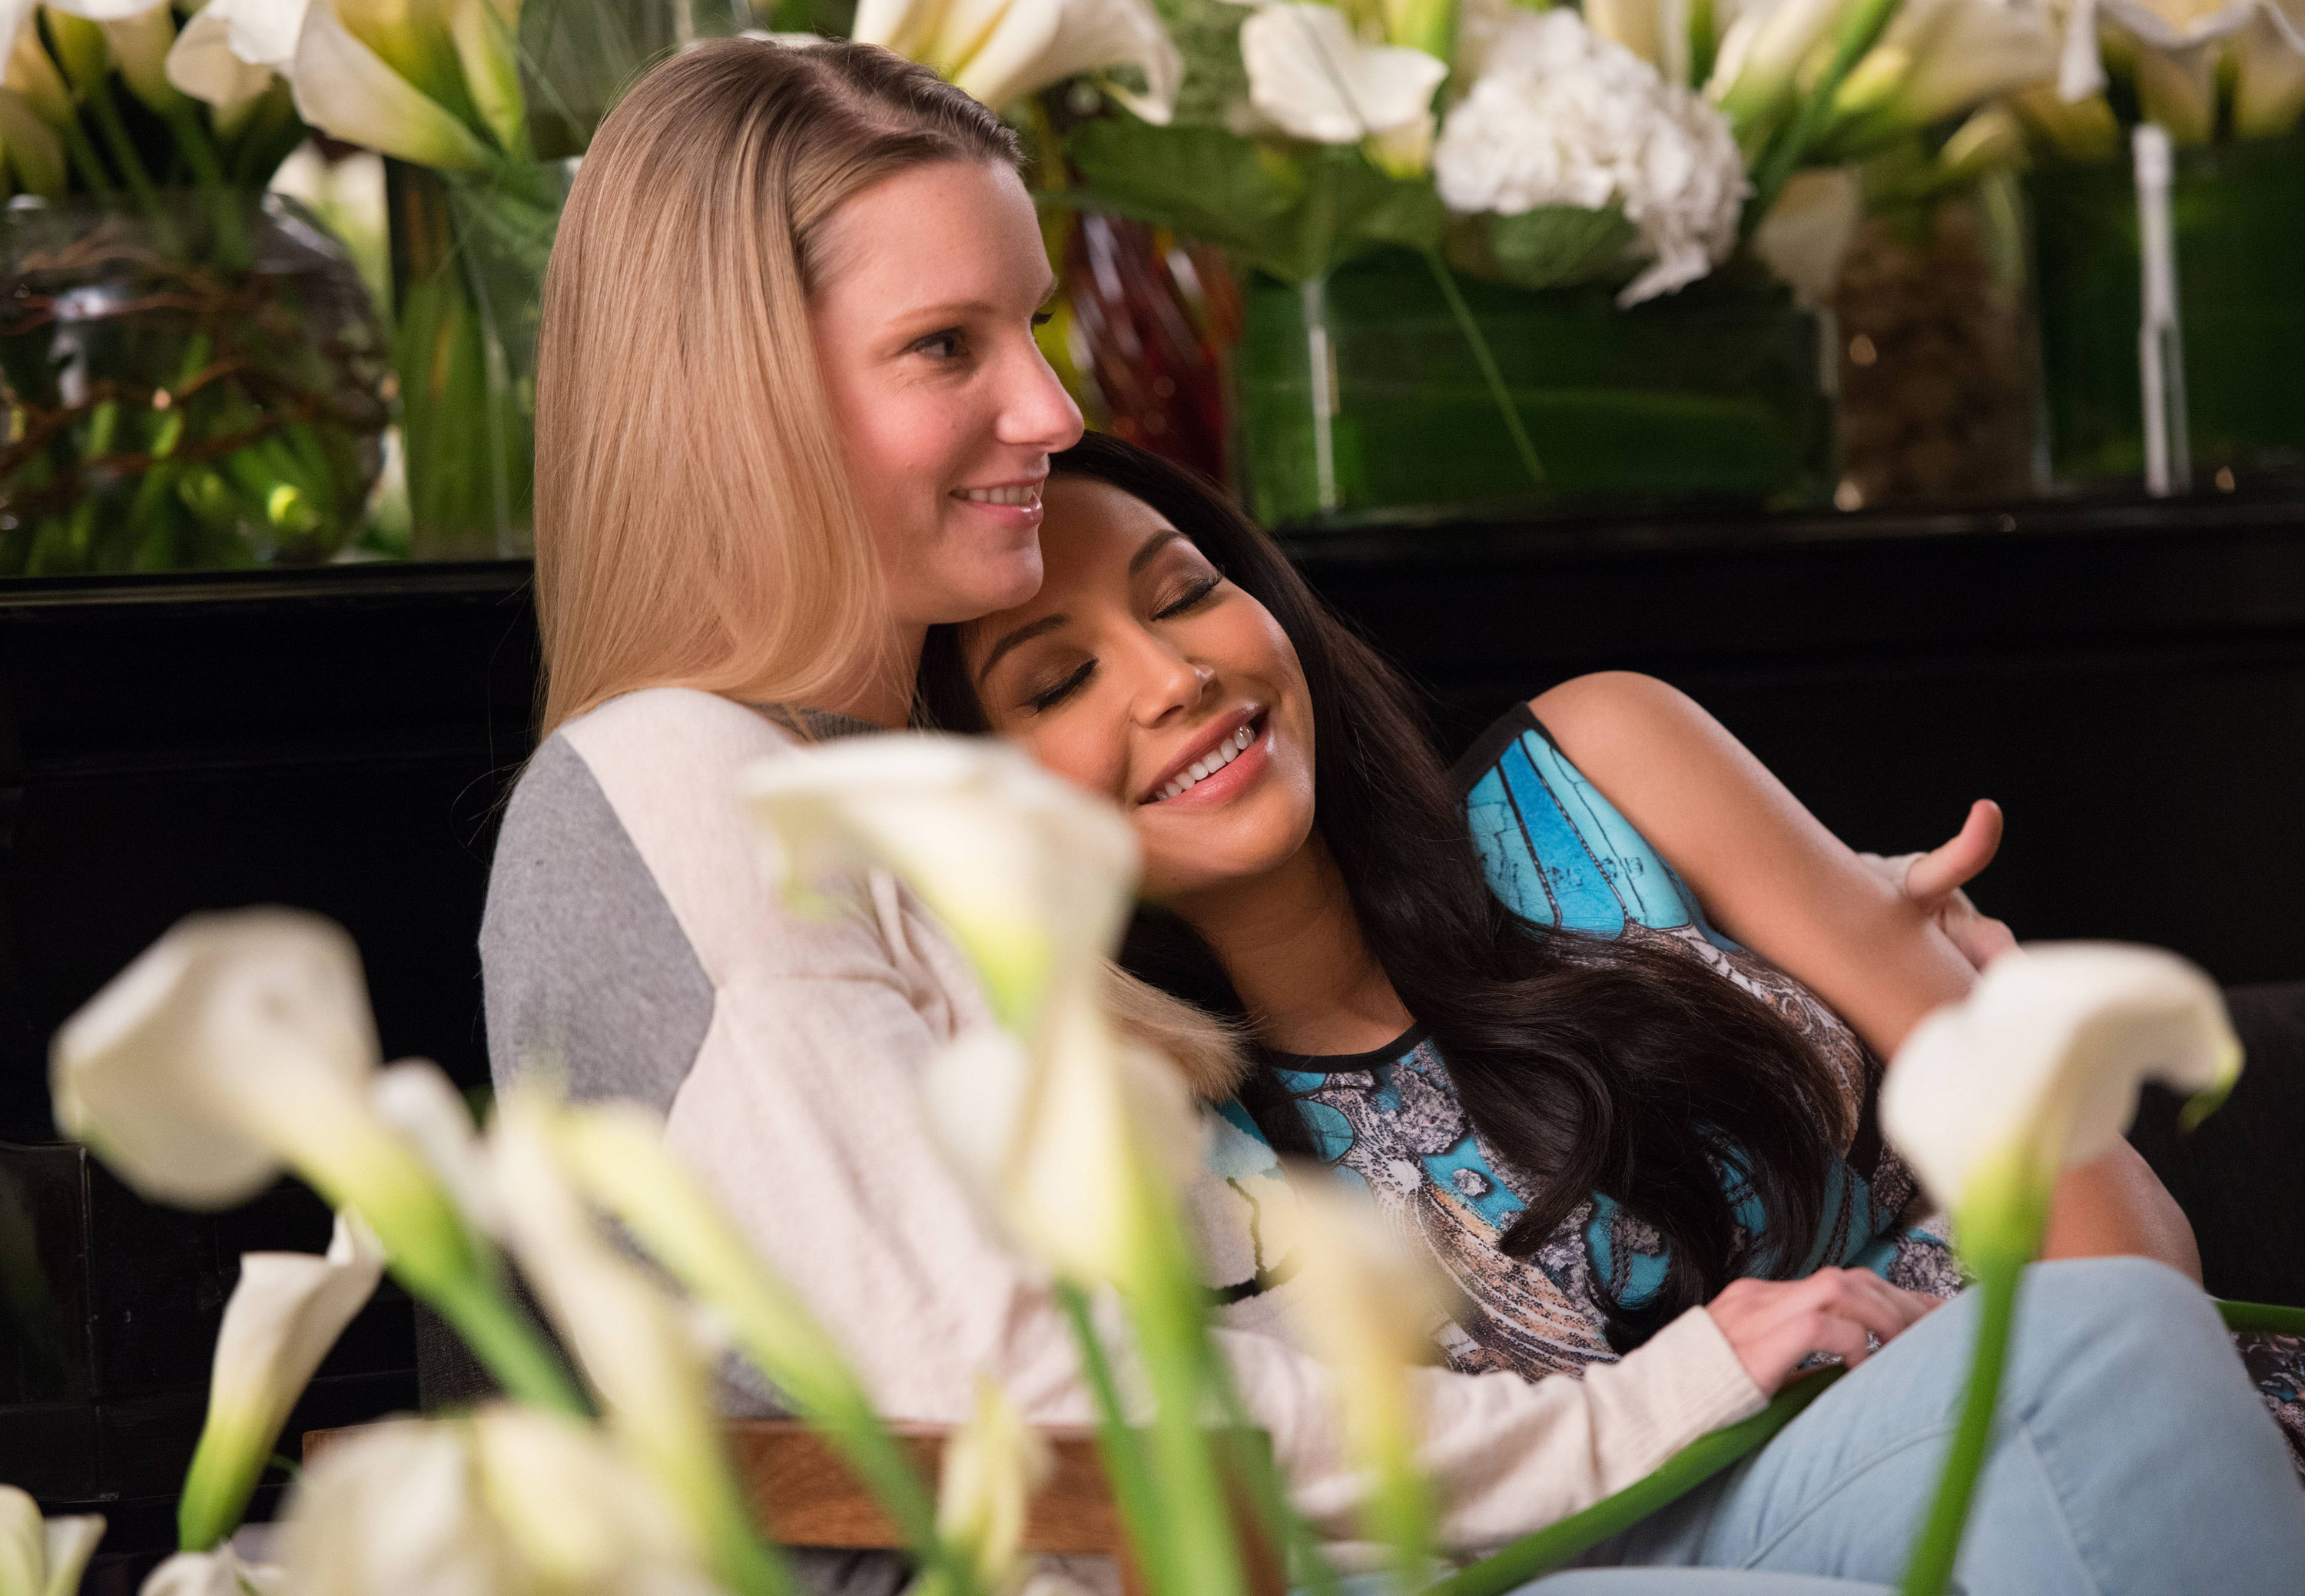 Heather and Naya cuddling in a scene from Glee